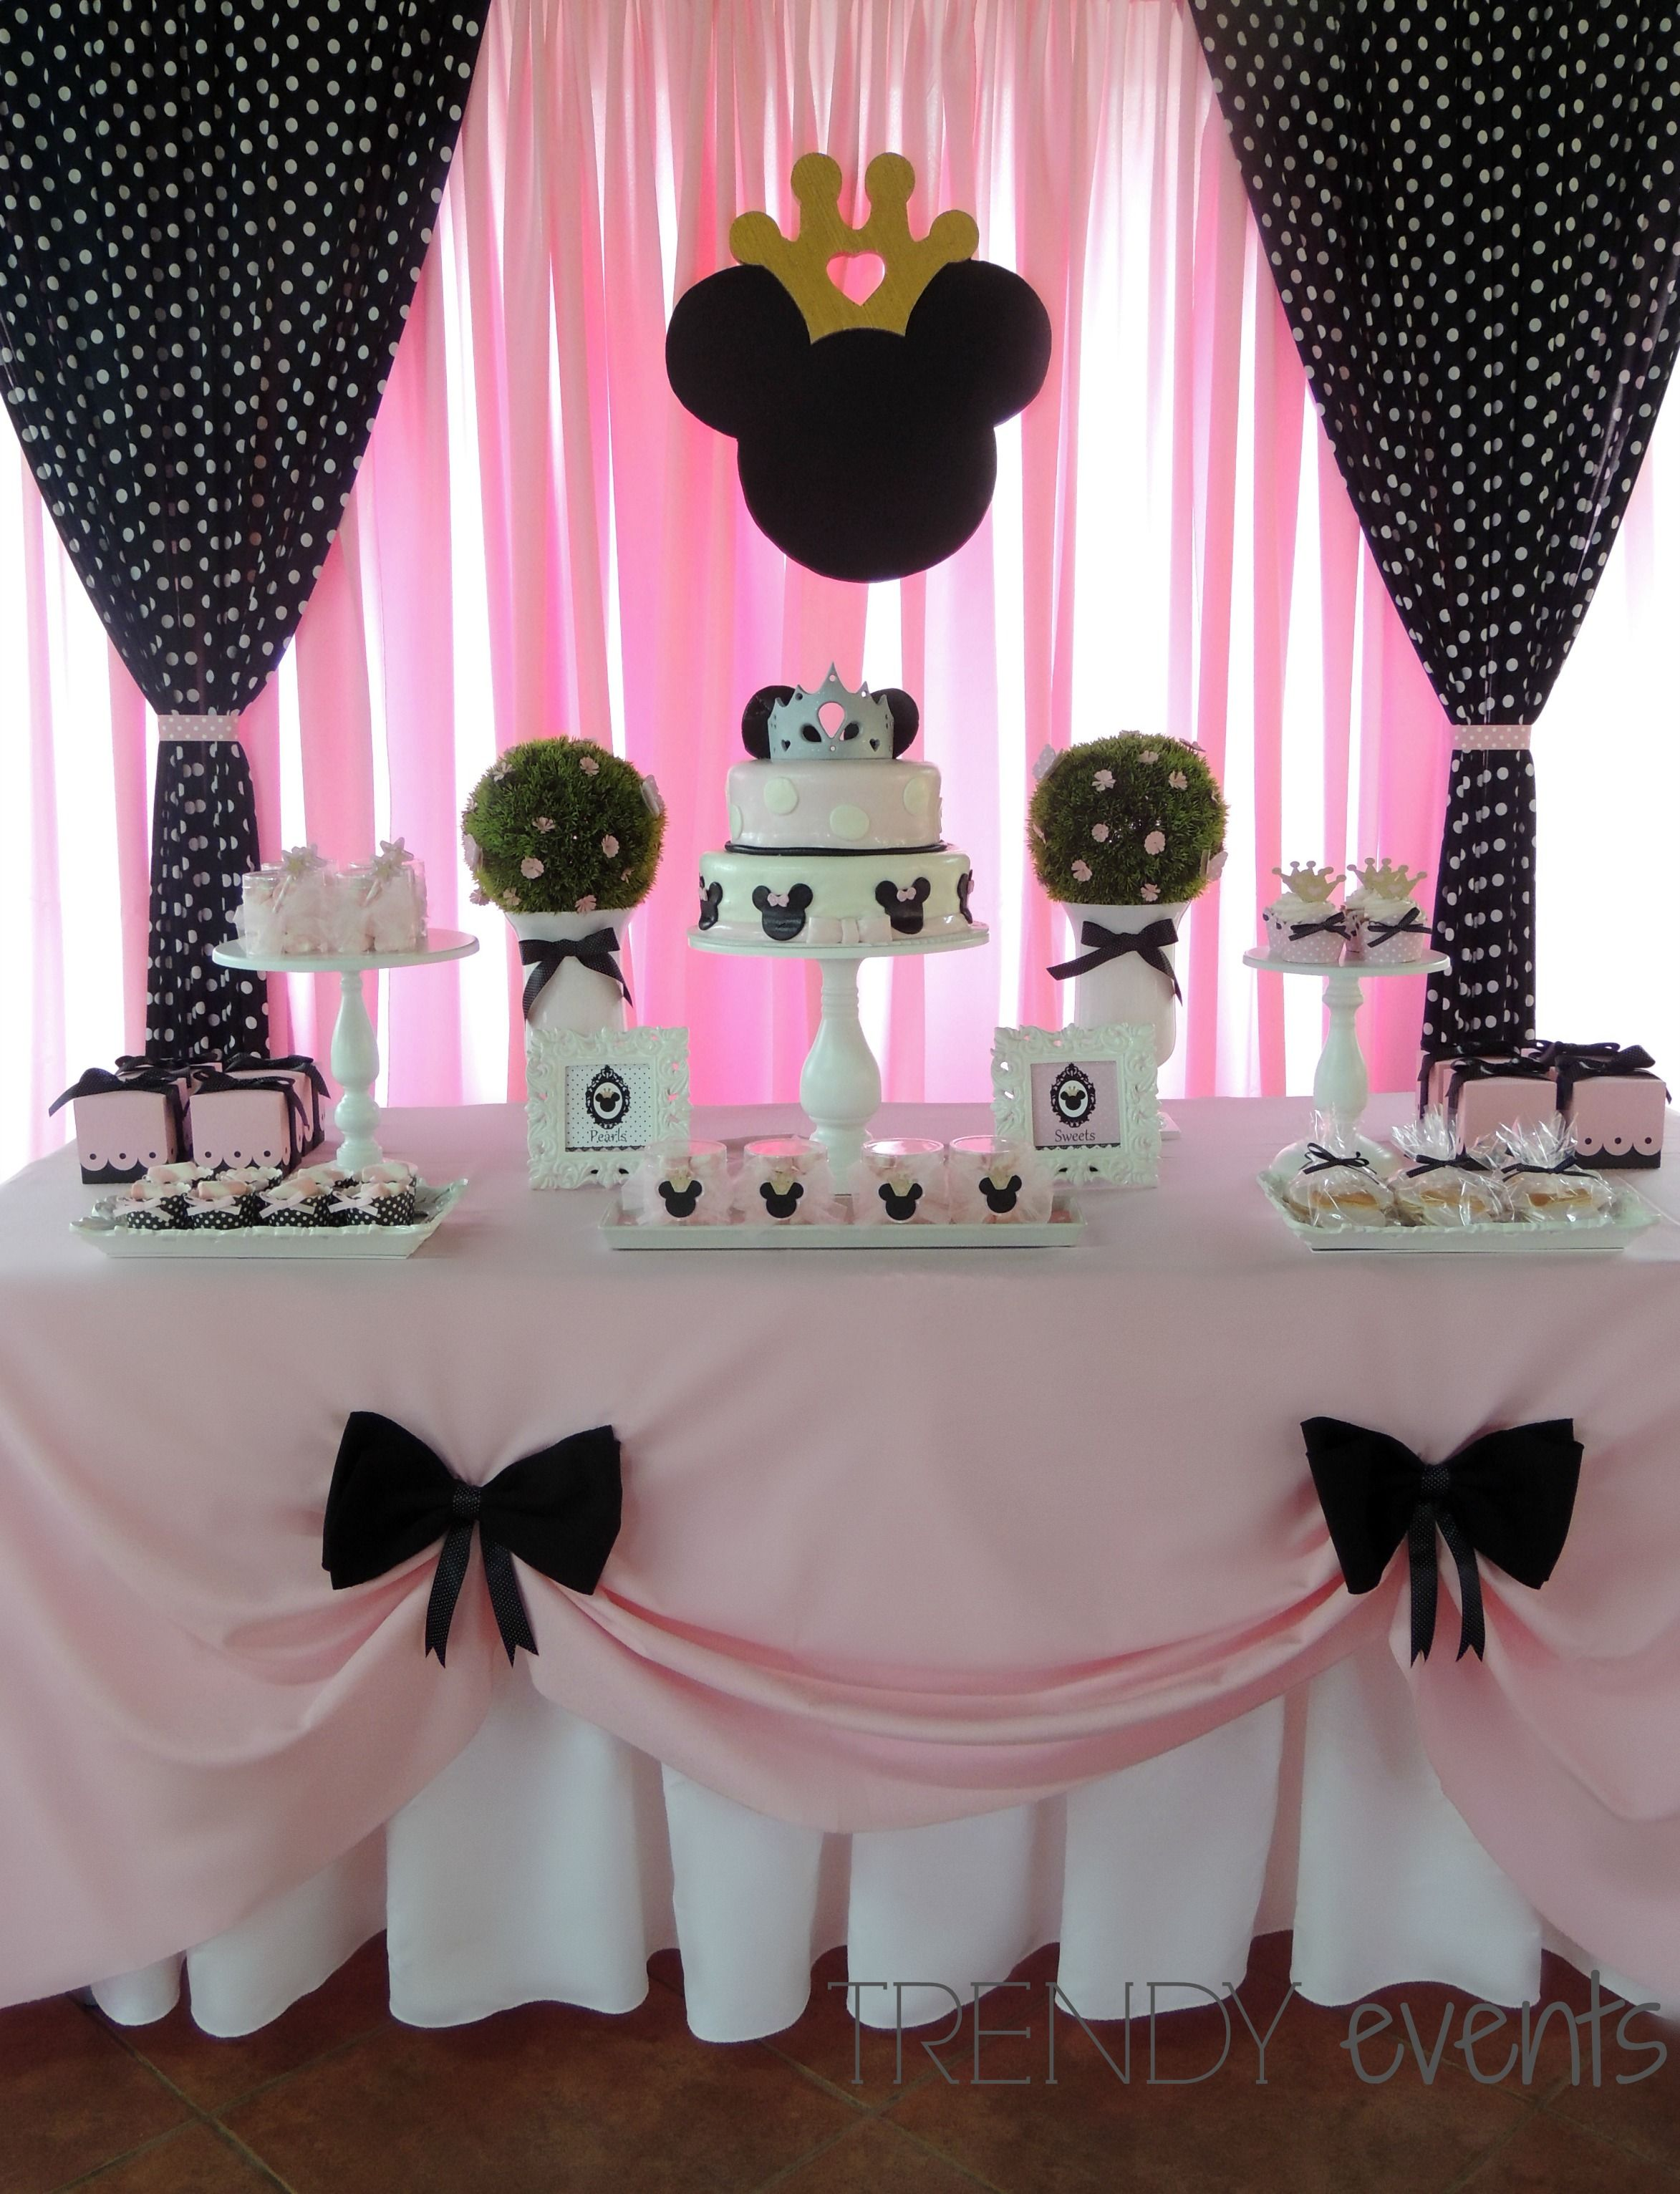 Minnie Mouse Princess Party Ideas By Trendy Events Www Facebook Com